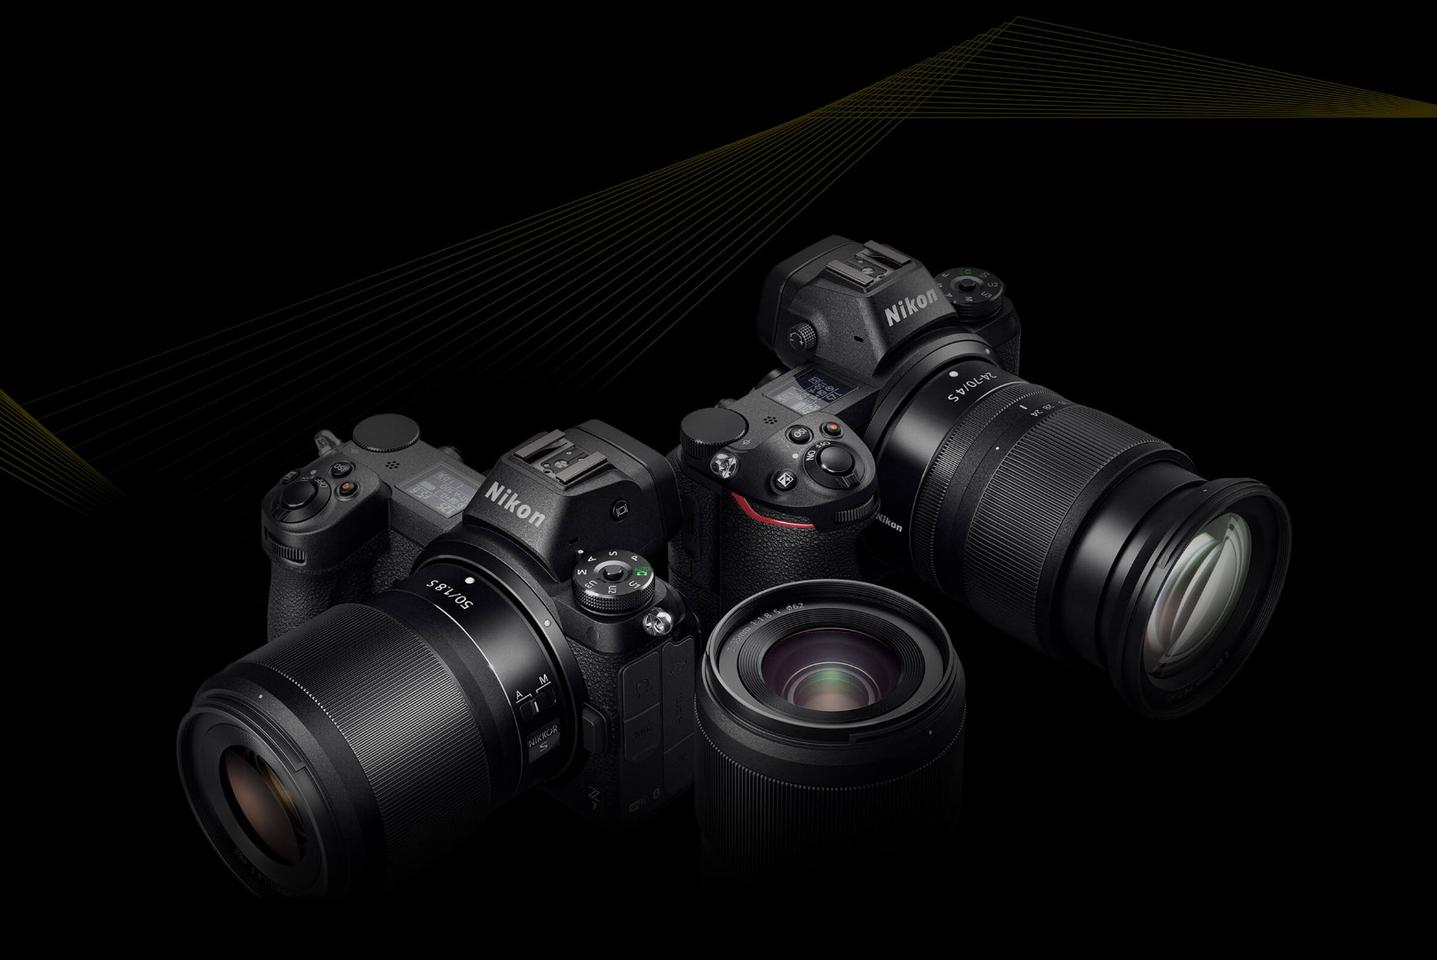 The Nikon Z 7 full-frame mirrorless camera will go on sale at the end of September, with the Z 6 following in November